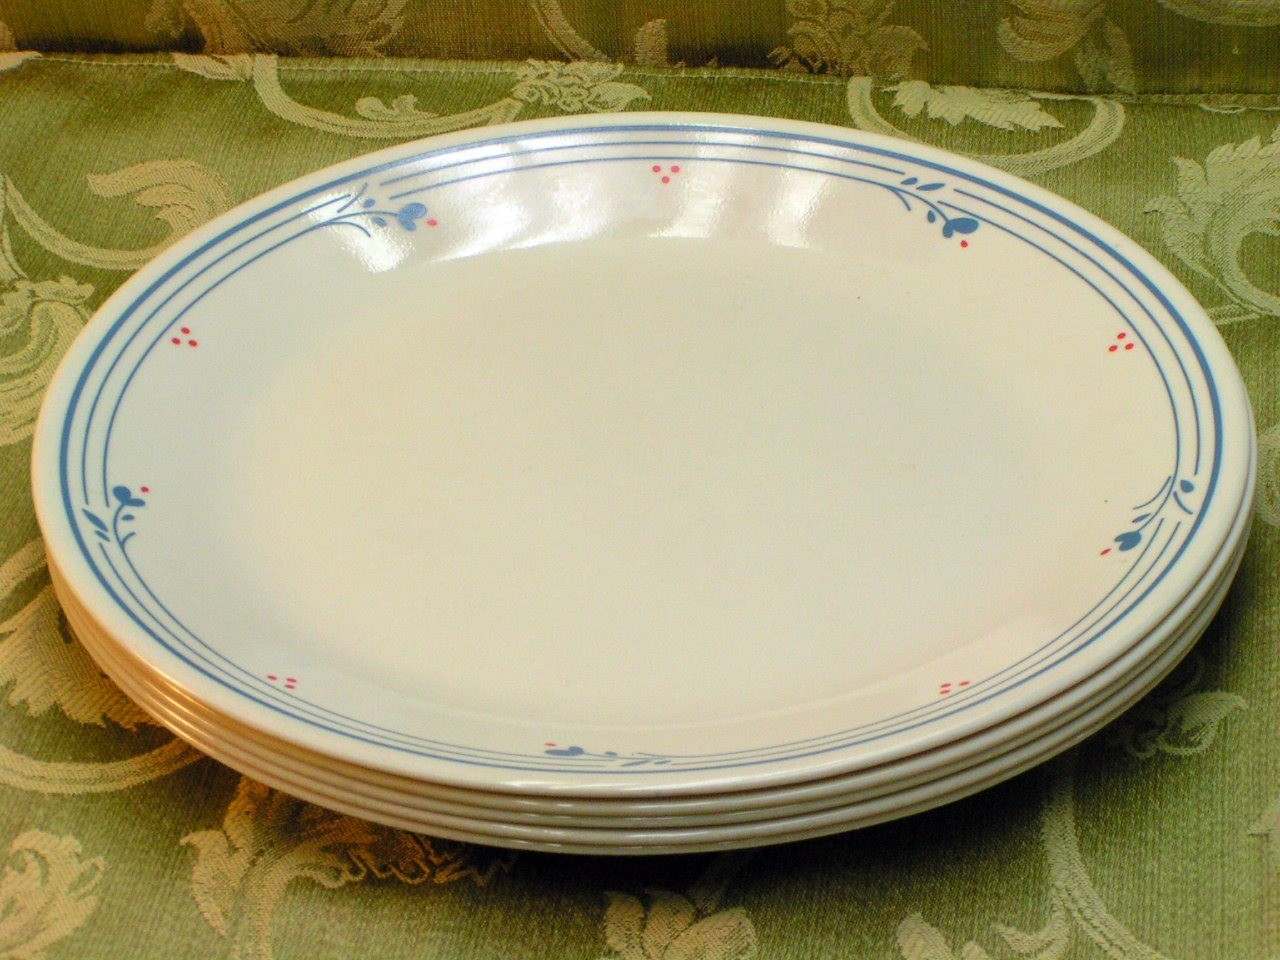 Find great deals on eBay for corelle ware plates. Shop with confidence.